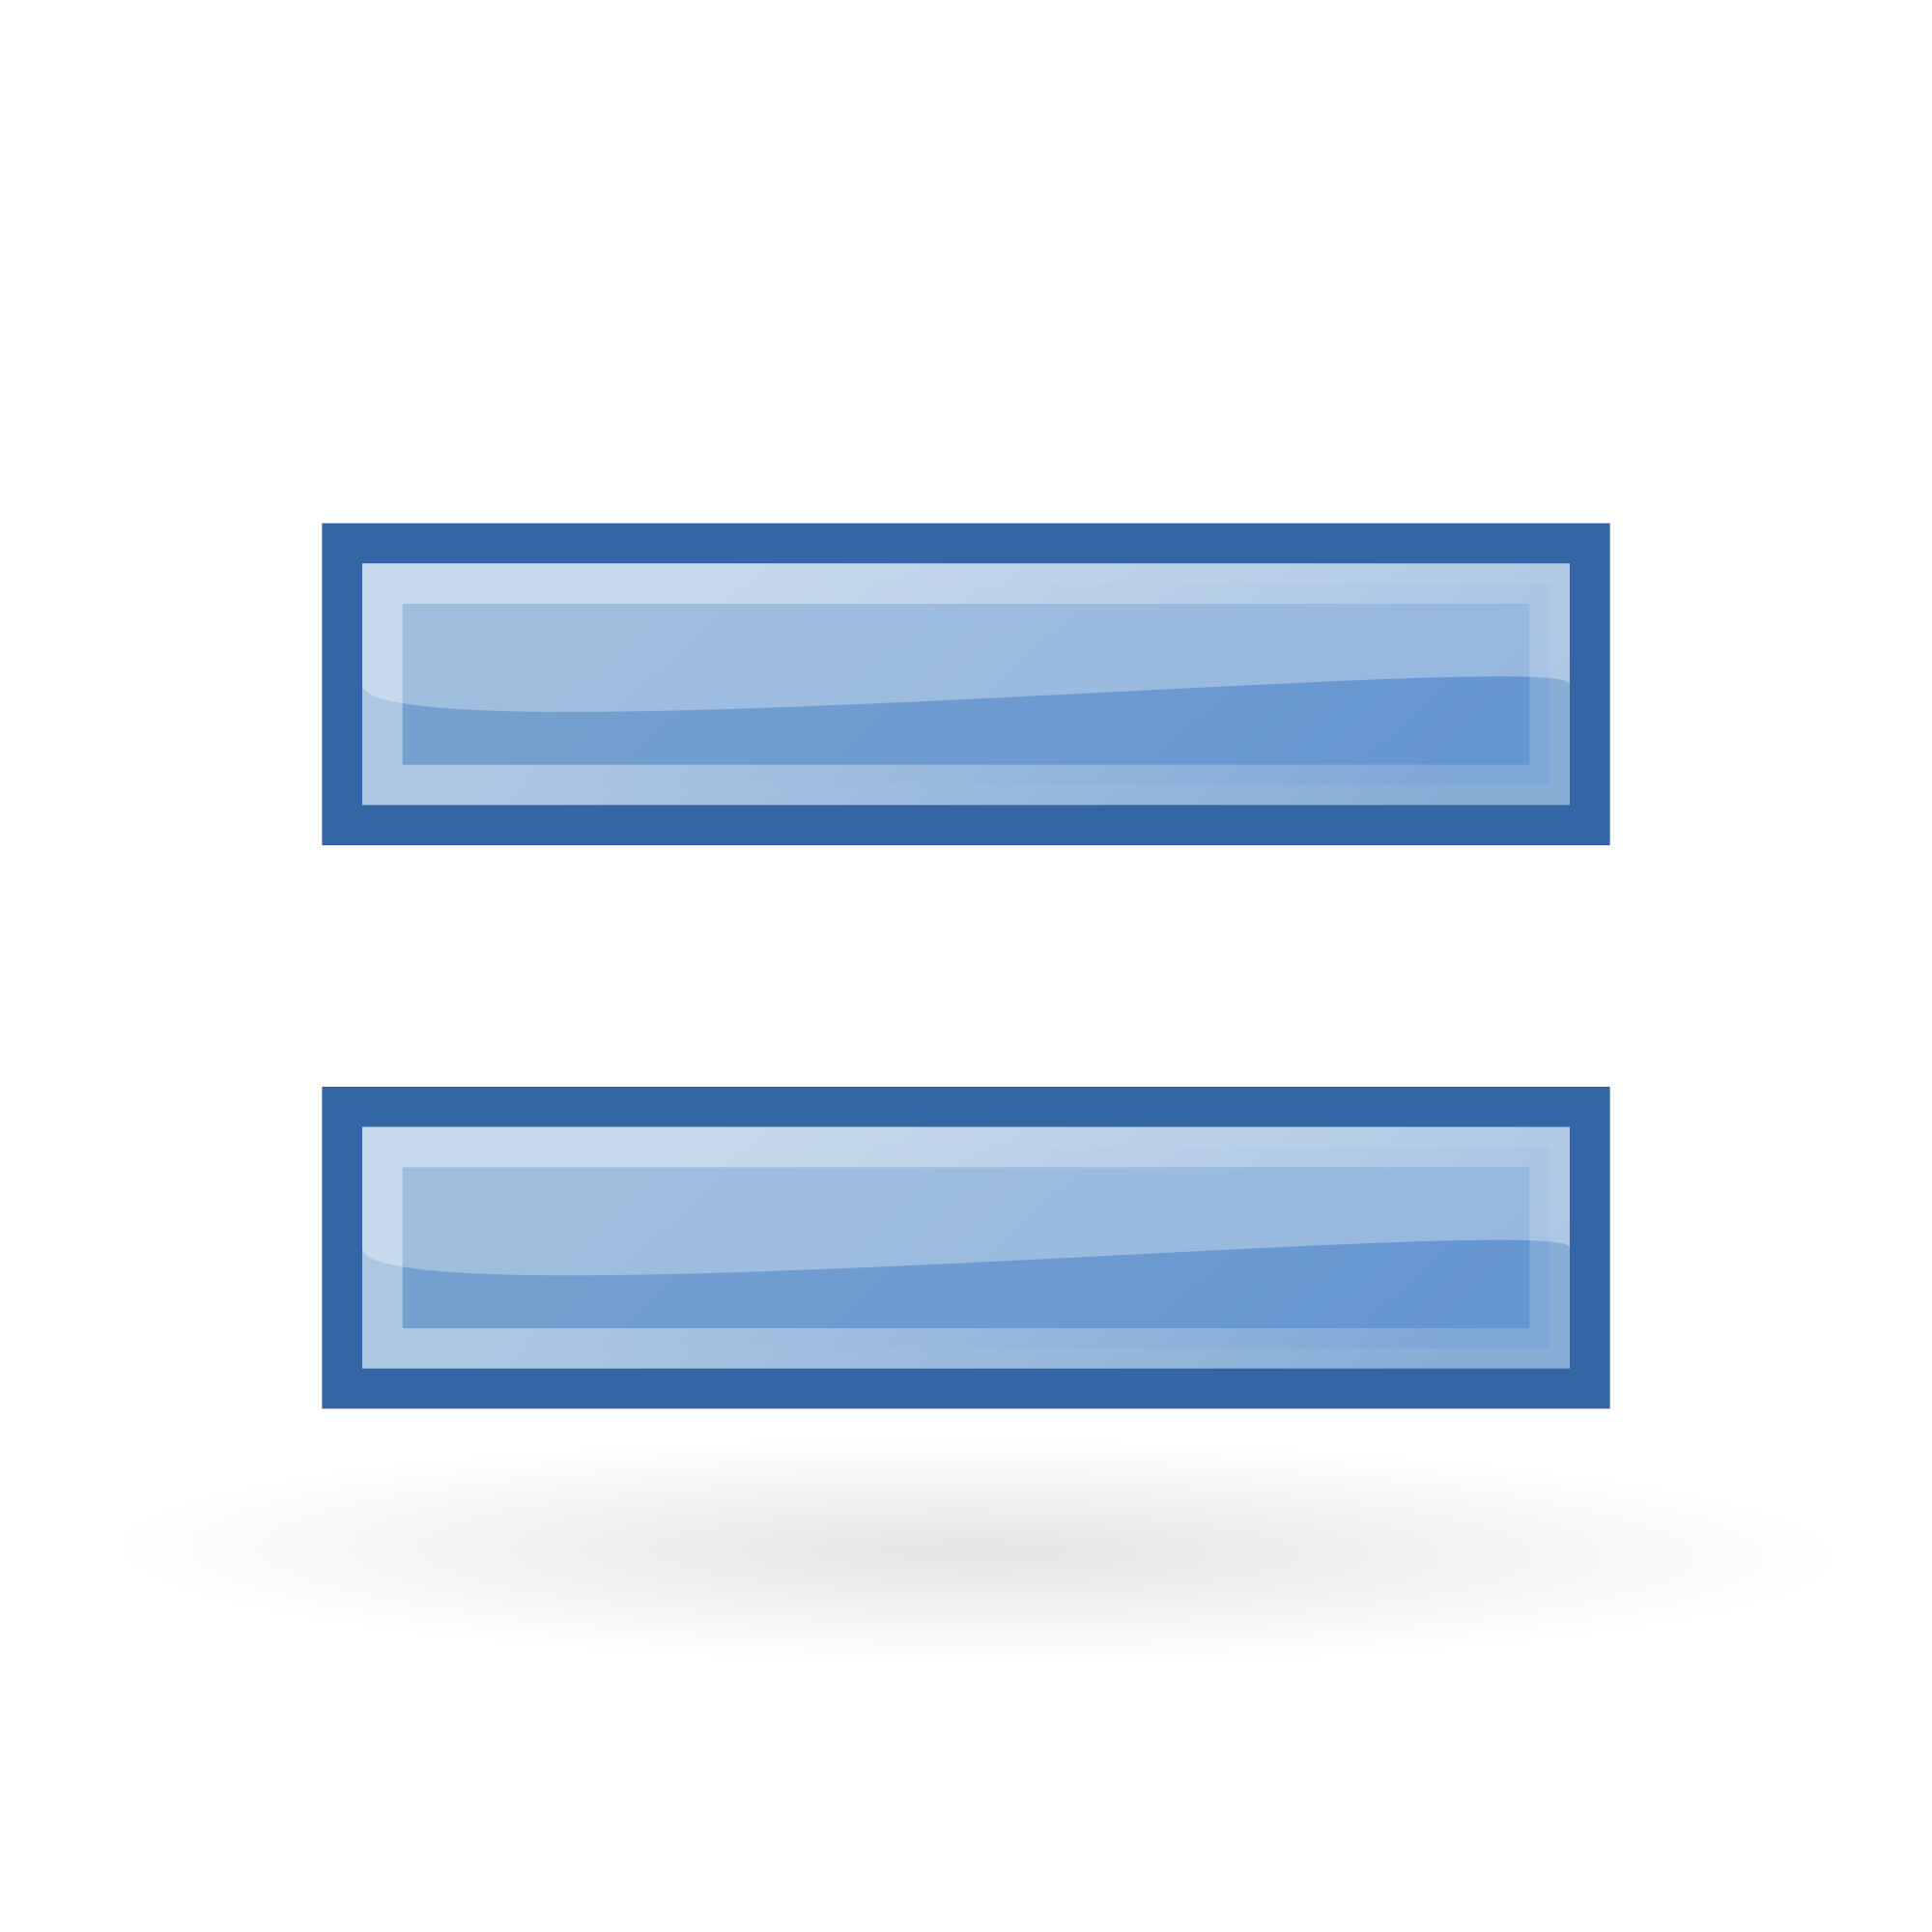 Equal clipart subtraction sign. File emblem svg wikimedia